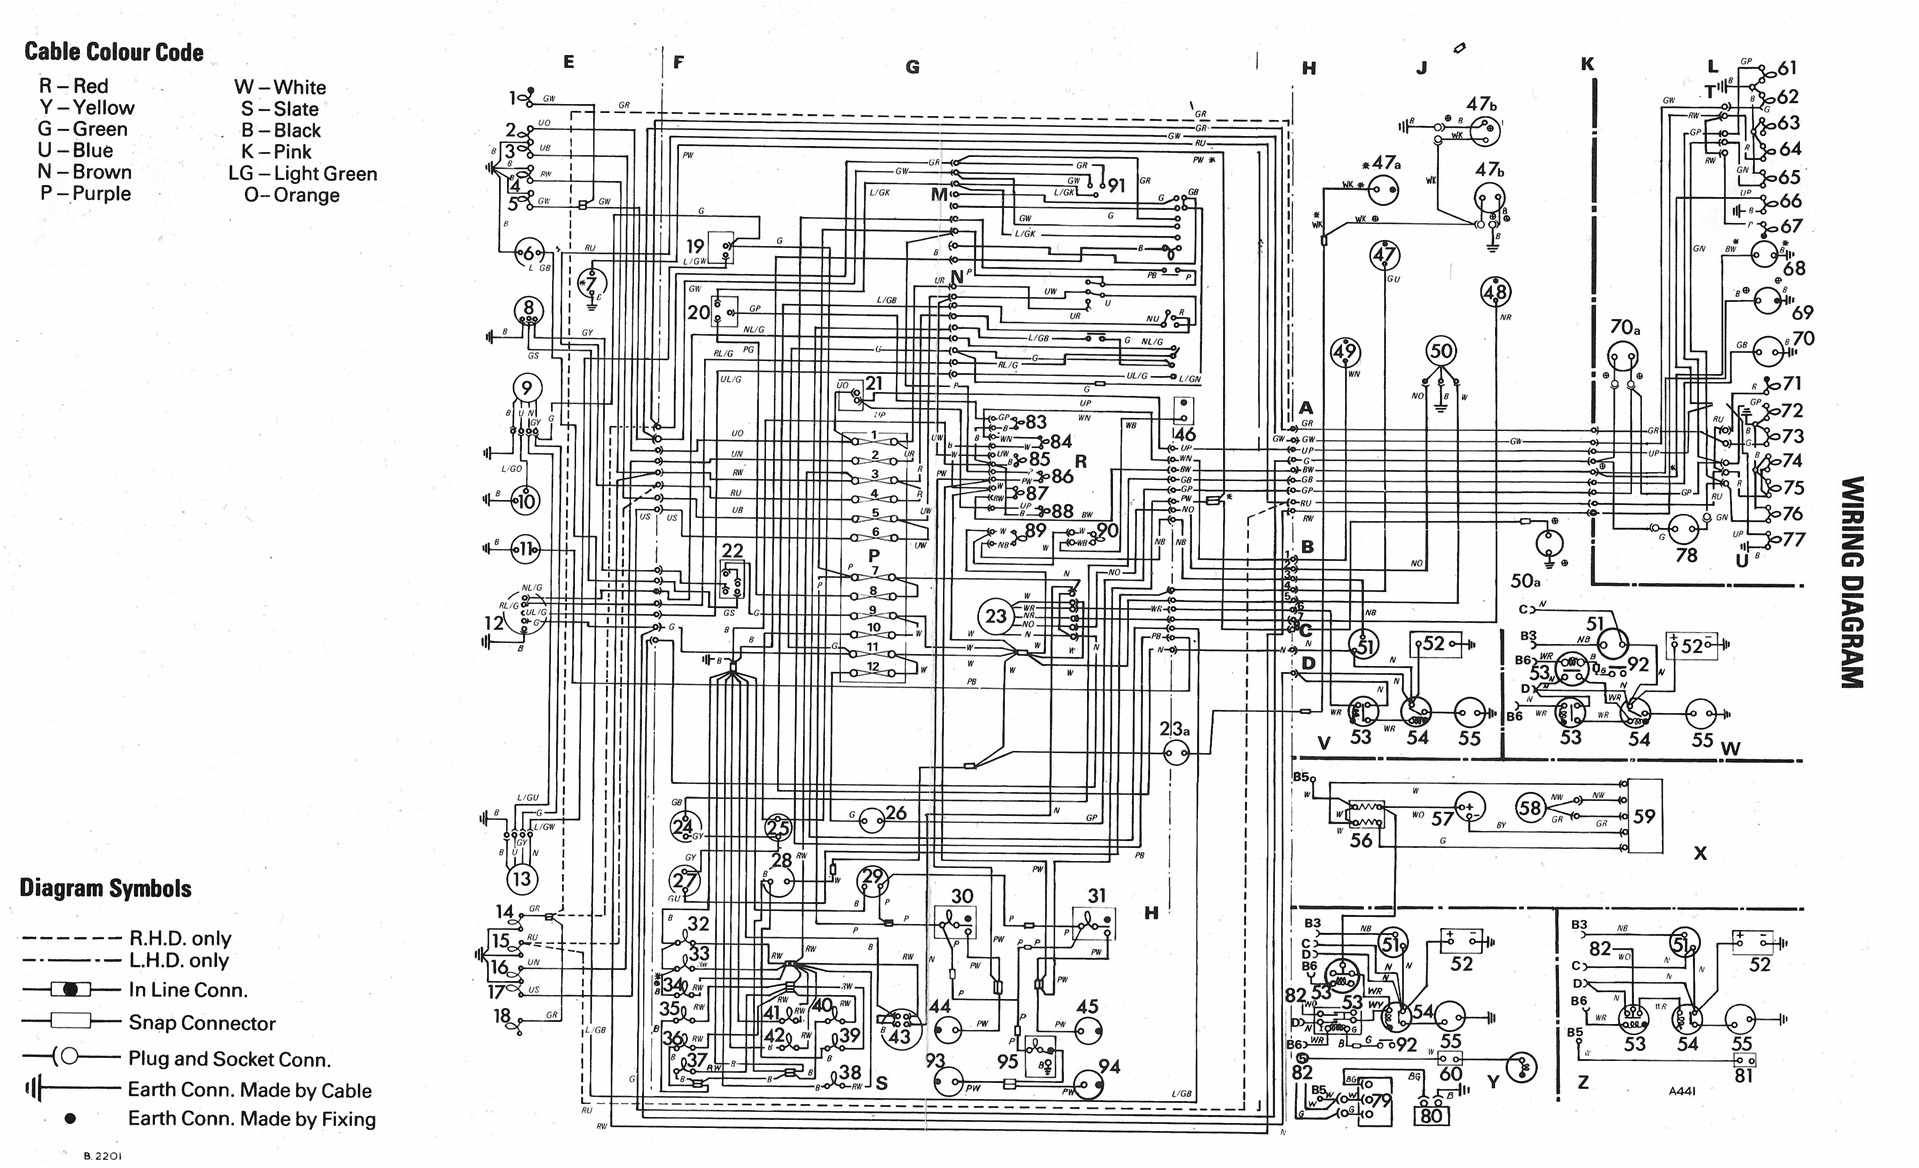 Electrical Wiring Diagram Of Volkswagen Golf Mk1 | Mk1 ... on